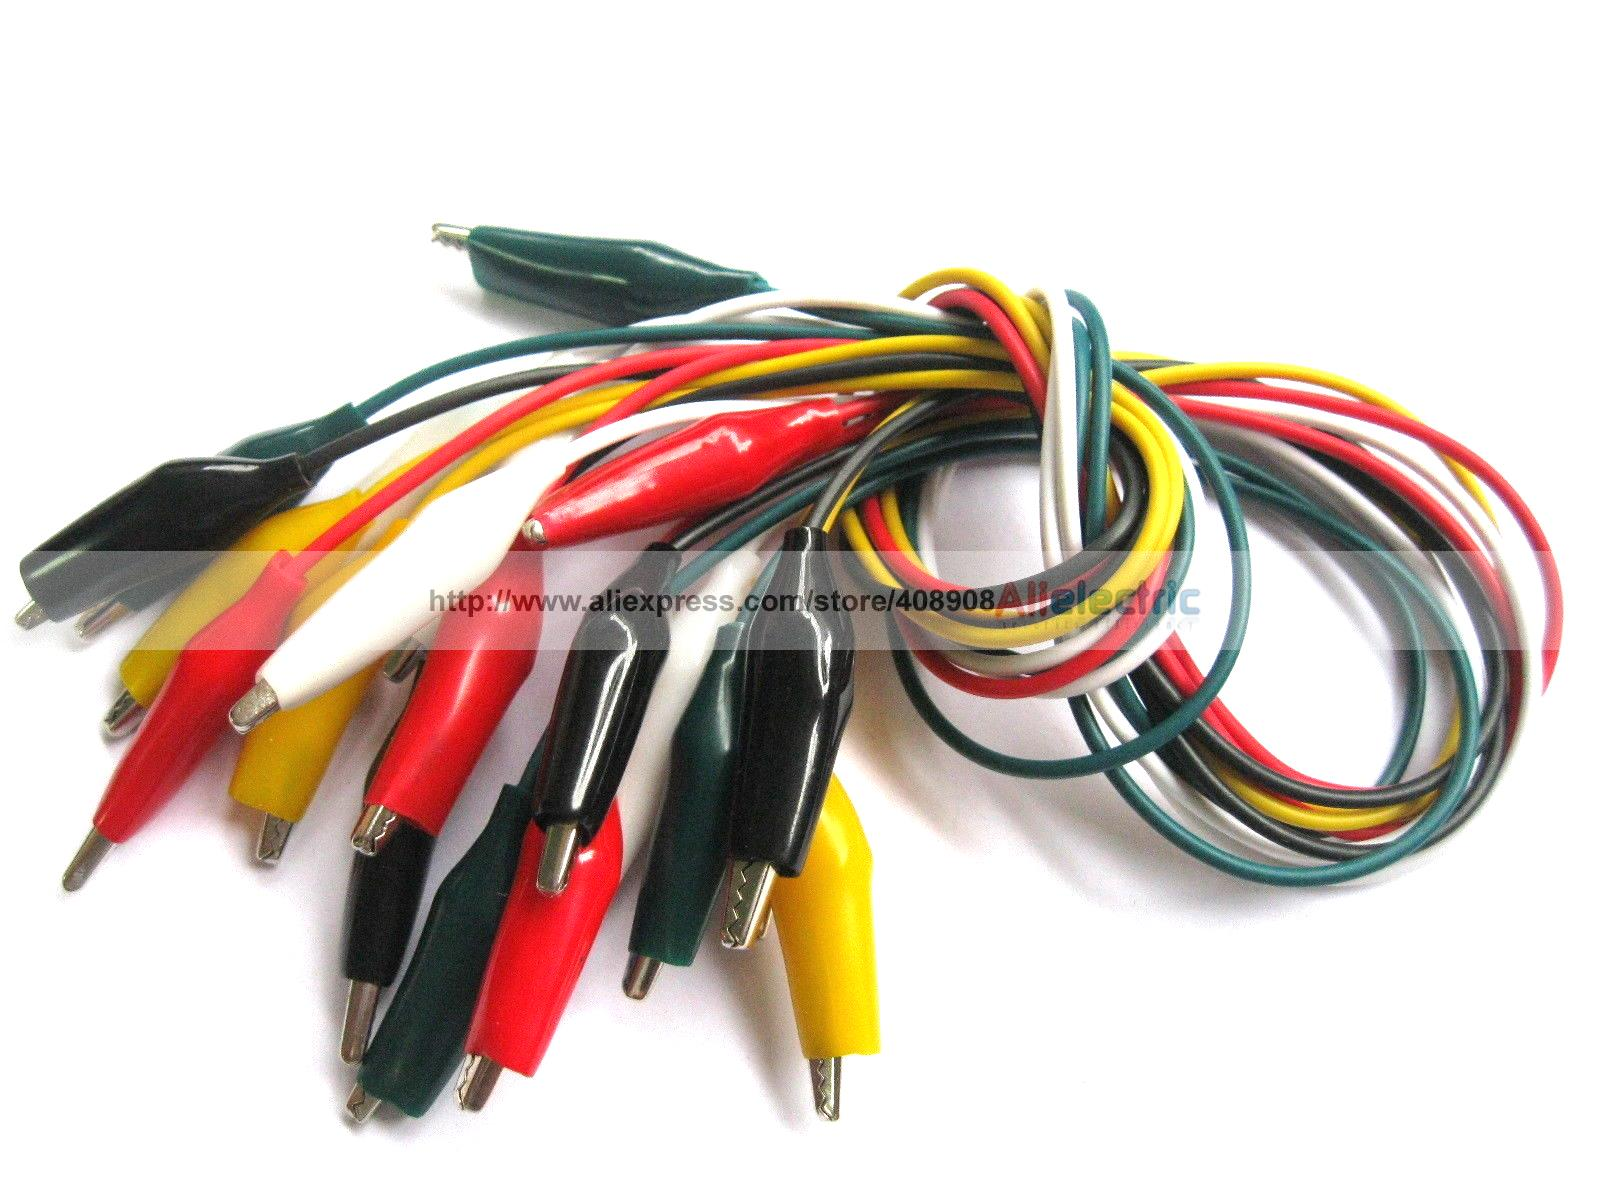 12 Set 60 Pcs 35mm Alligator Test Clip Lead 5 Colors 50cm Long Middle Size <br><br>Aliexpress